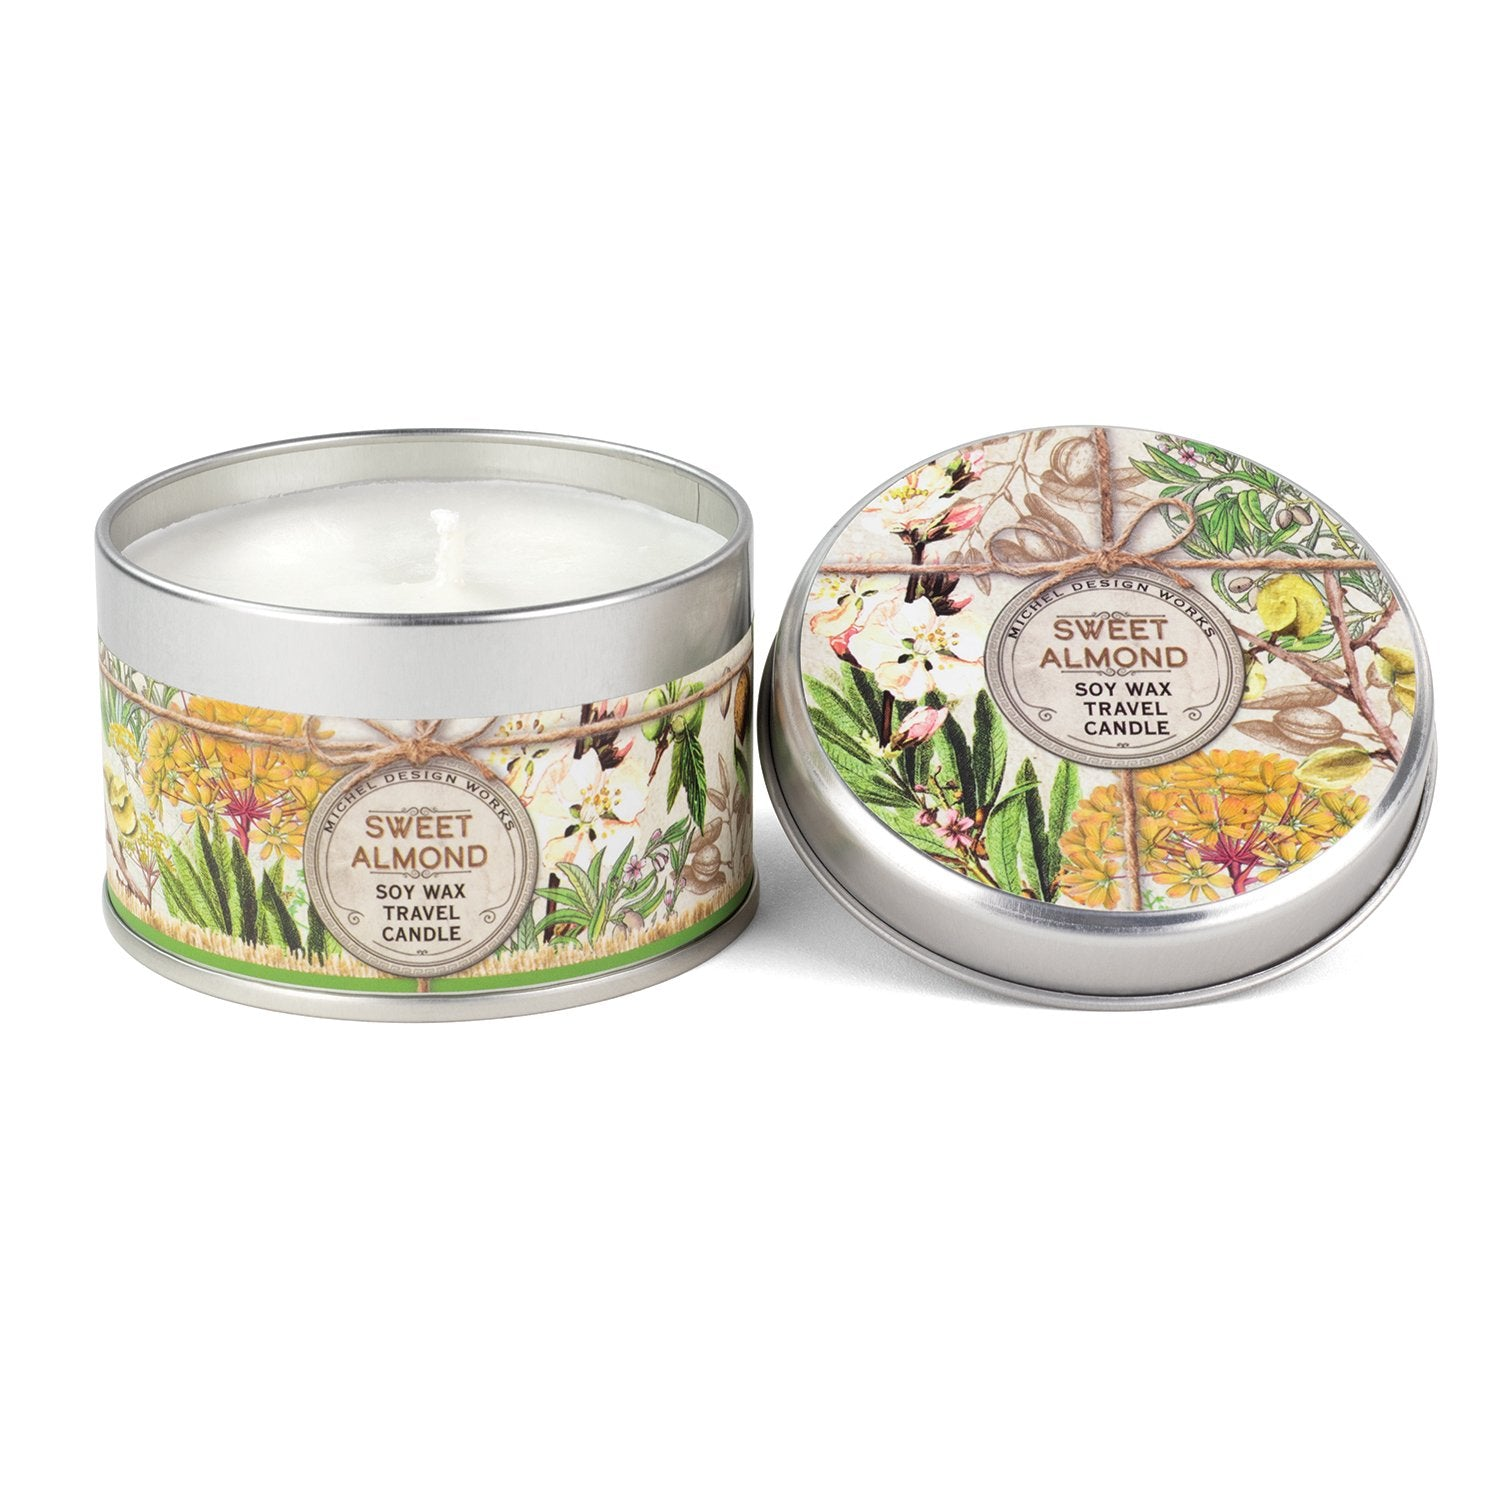 Sweet Almond Travel Candle